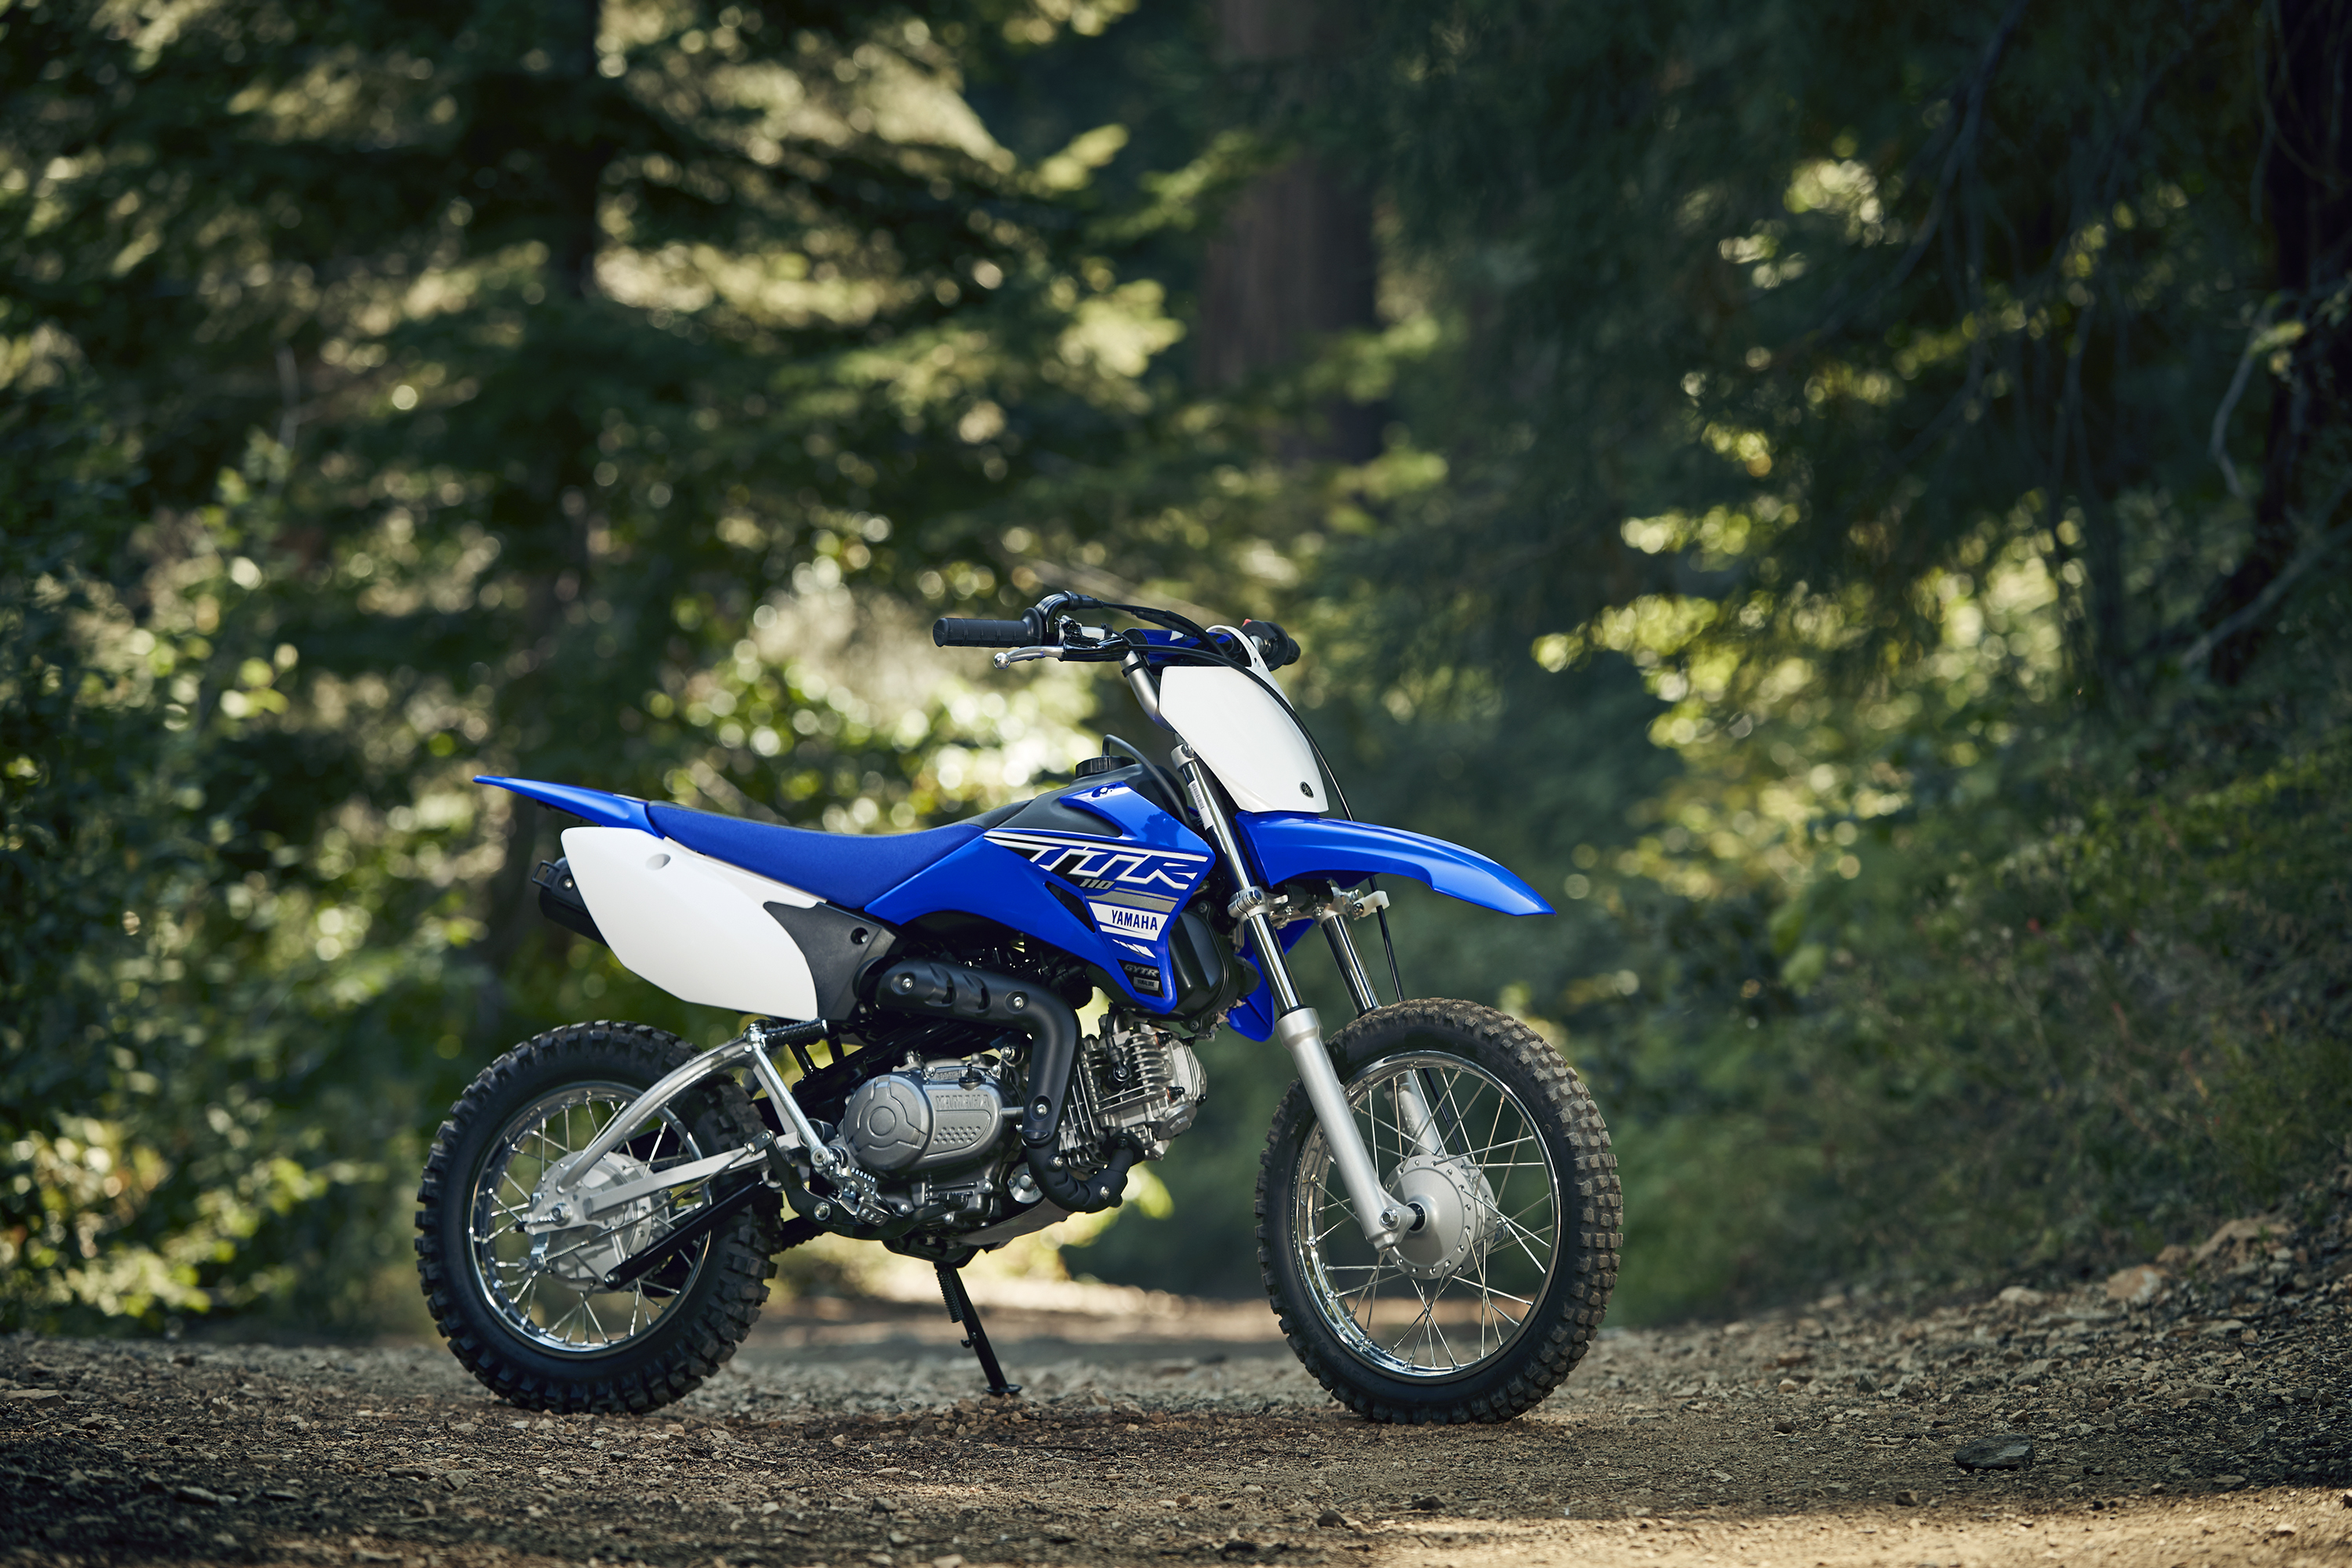 Yamaha Dirt Bikes For Sale | Cody, WY | Powersports Dealer